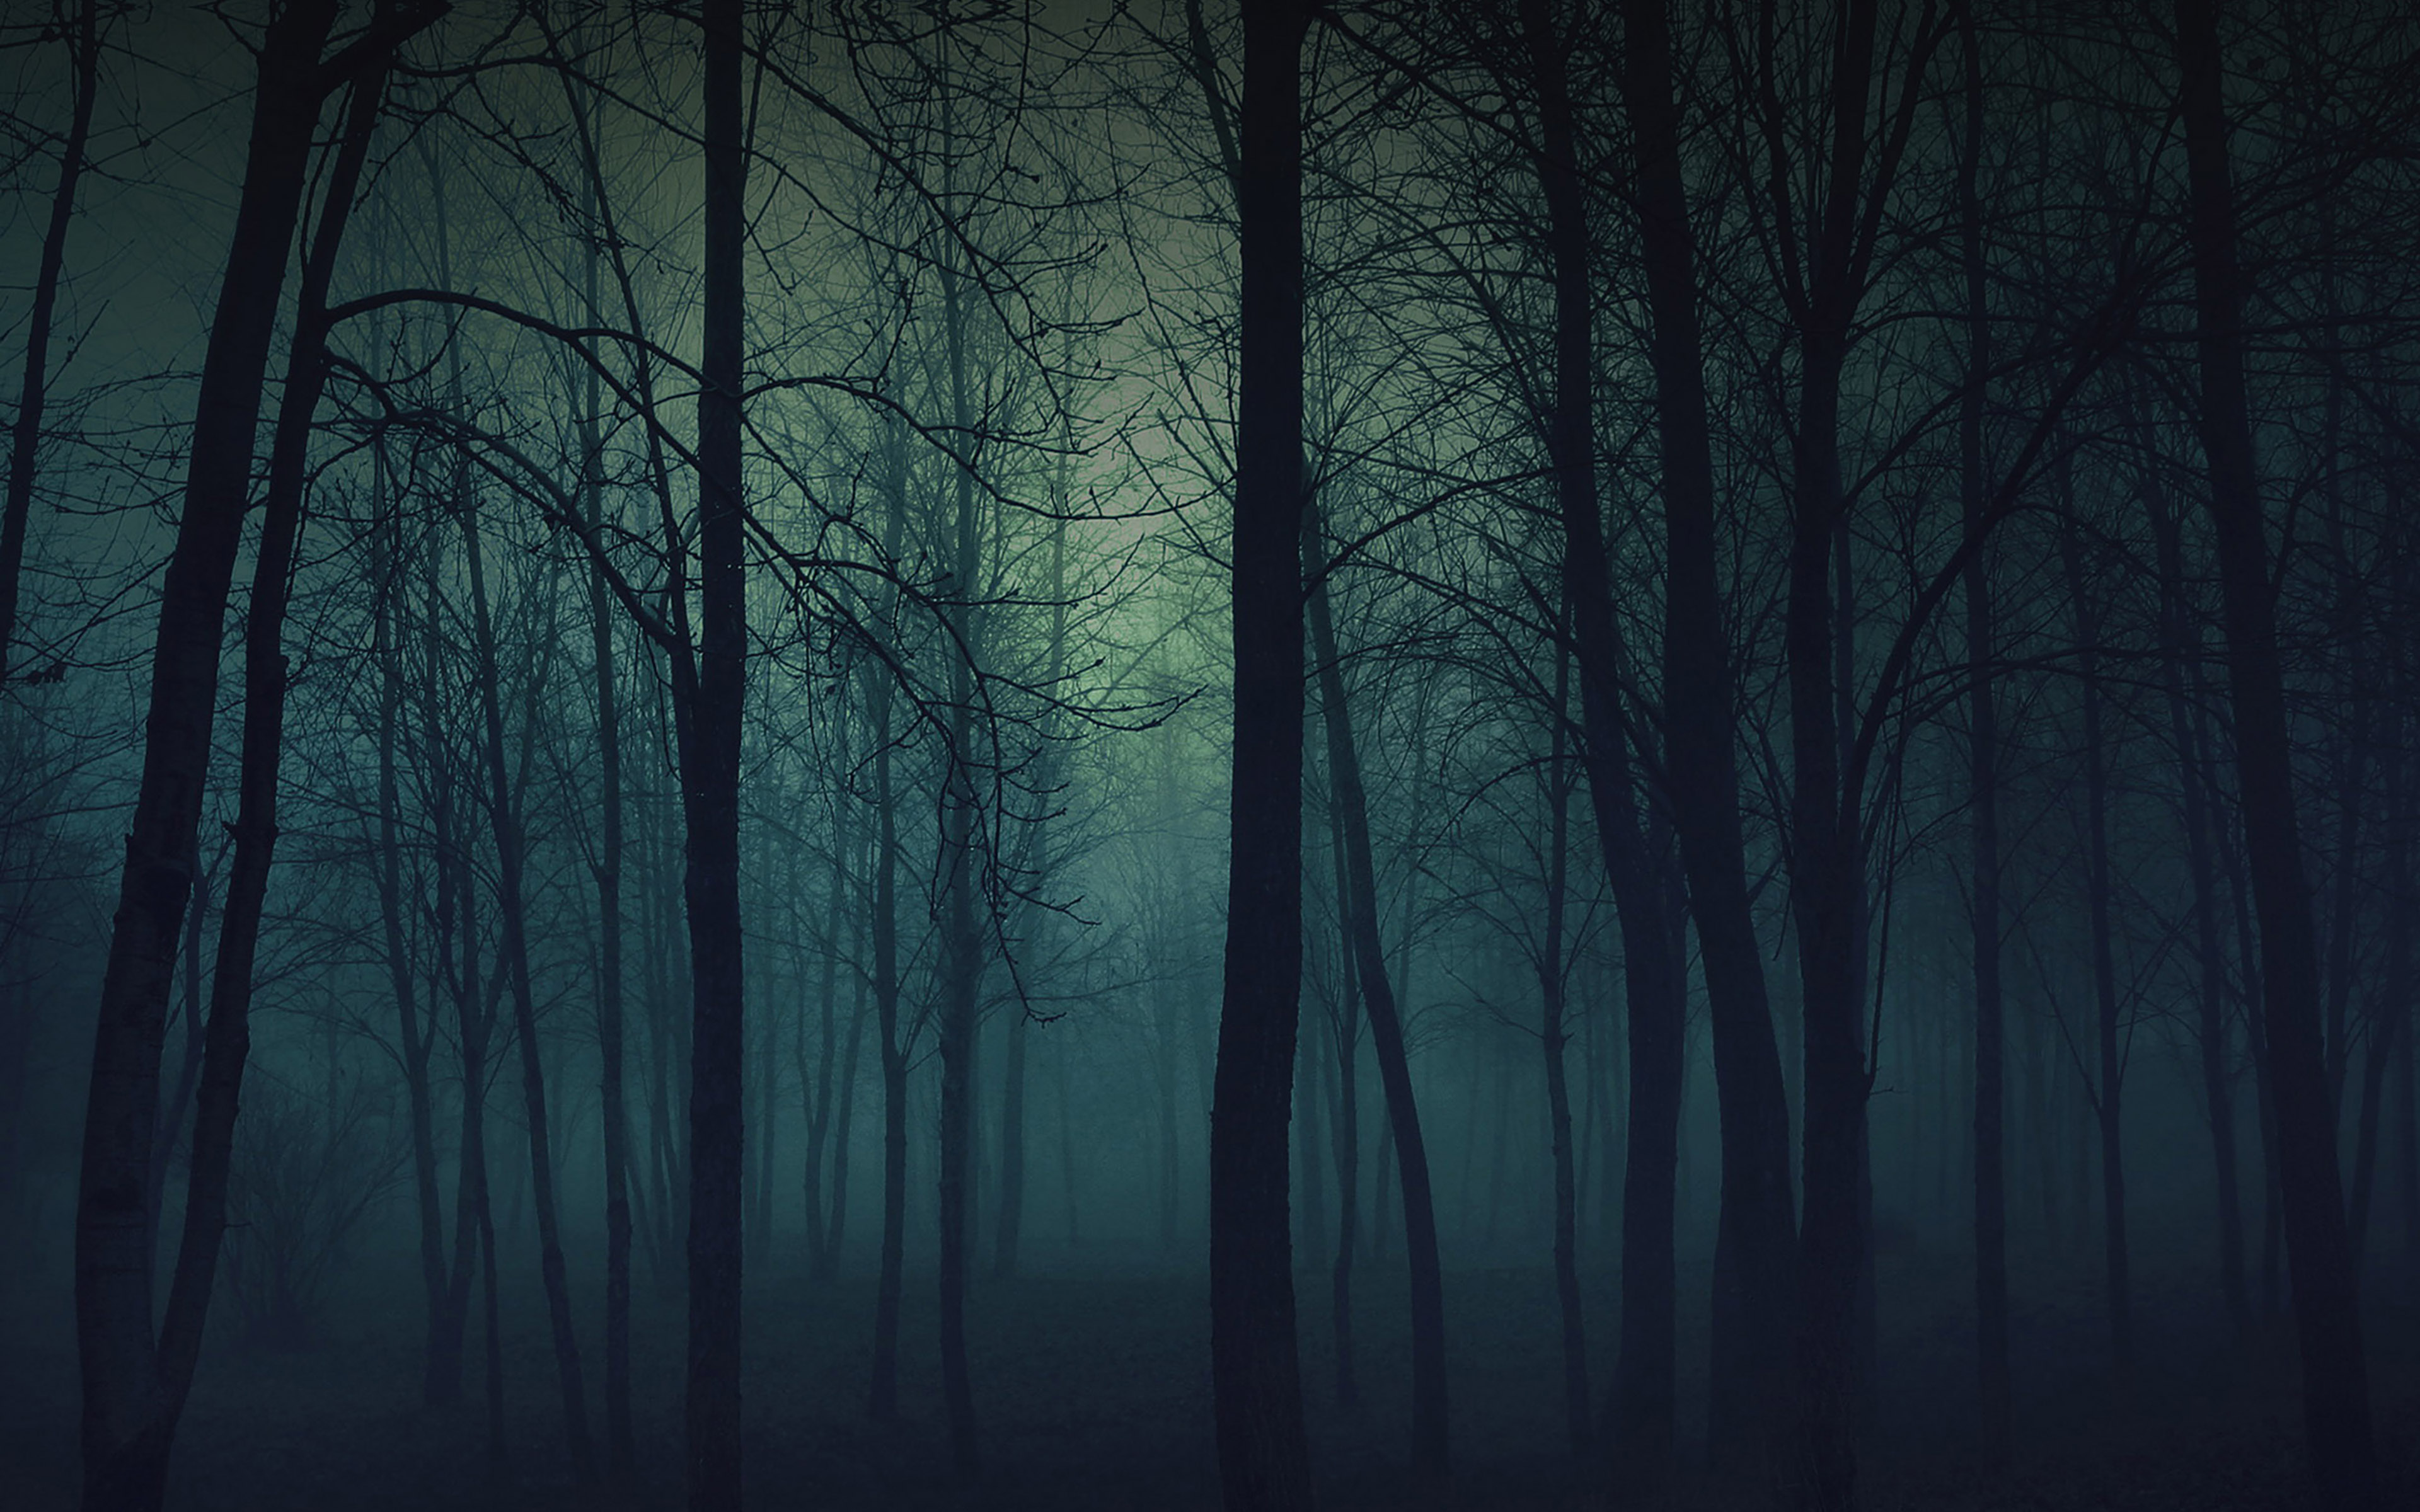 Forest 4k Quality Iphone Wallpaper: Mb33-wallpaper-foggy-forest-mountain